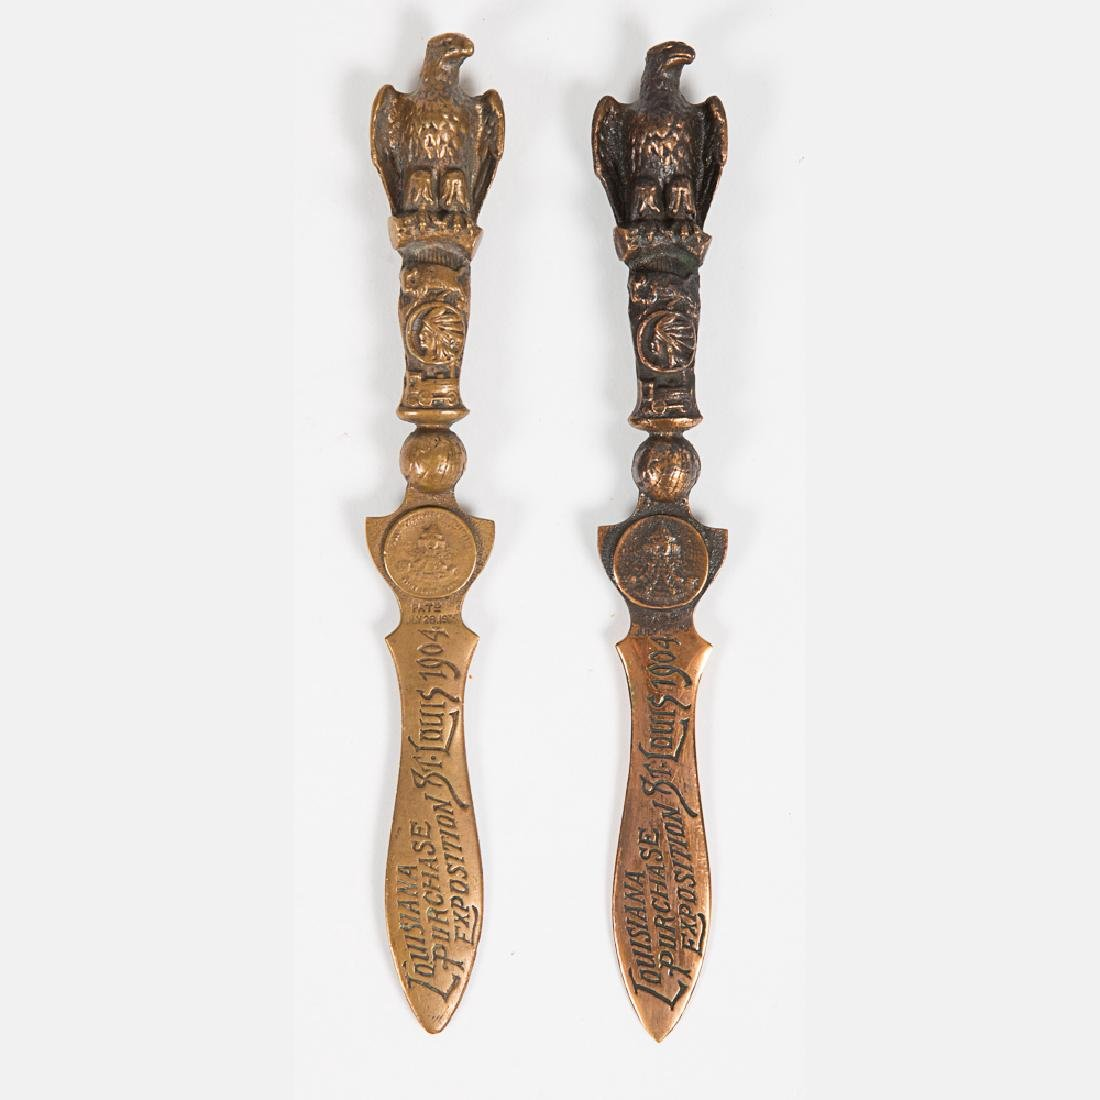 Two Brass and Bronze Letter Openers from the Louisiana